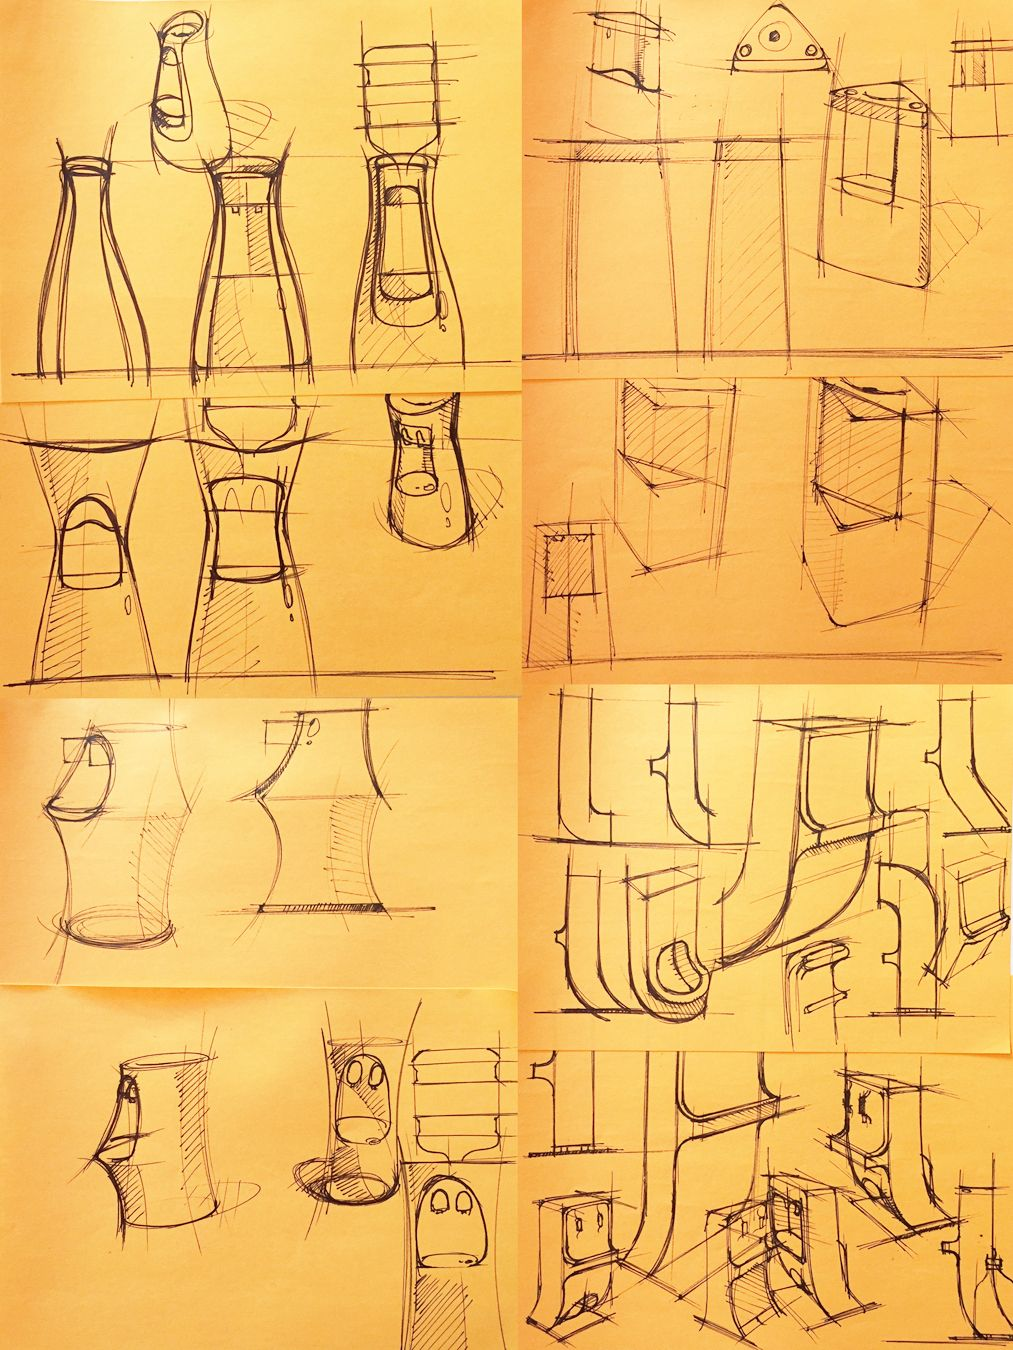 Process Insight Thumbnail Sketches For Kemflo Water Filtration Visual Brand Language James Owen Design Kemflo Design Industrialdesi Design Sketches